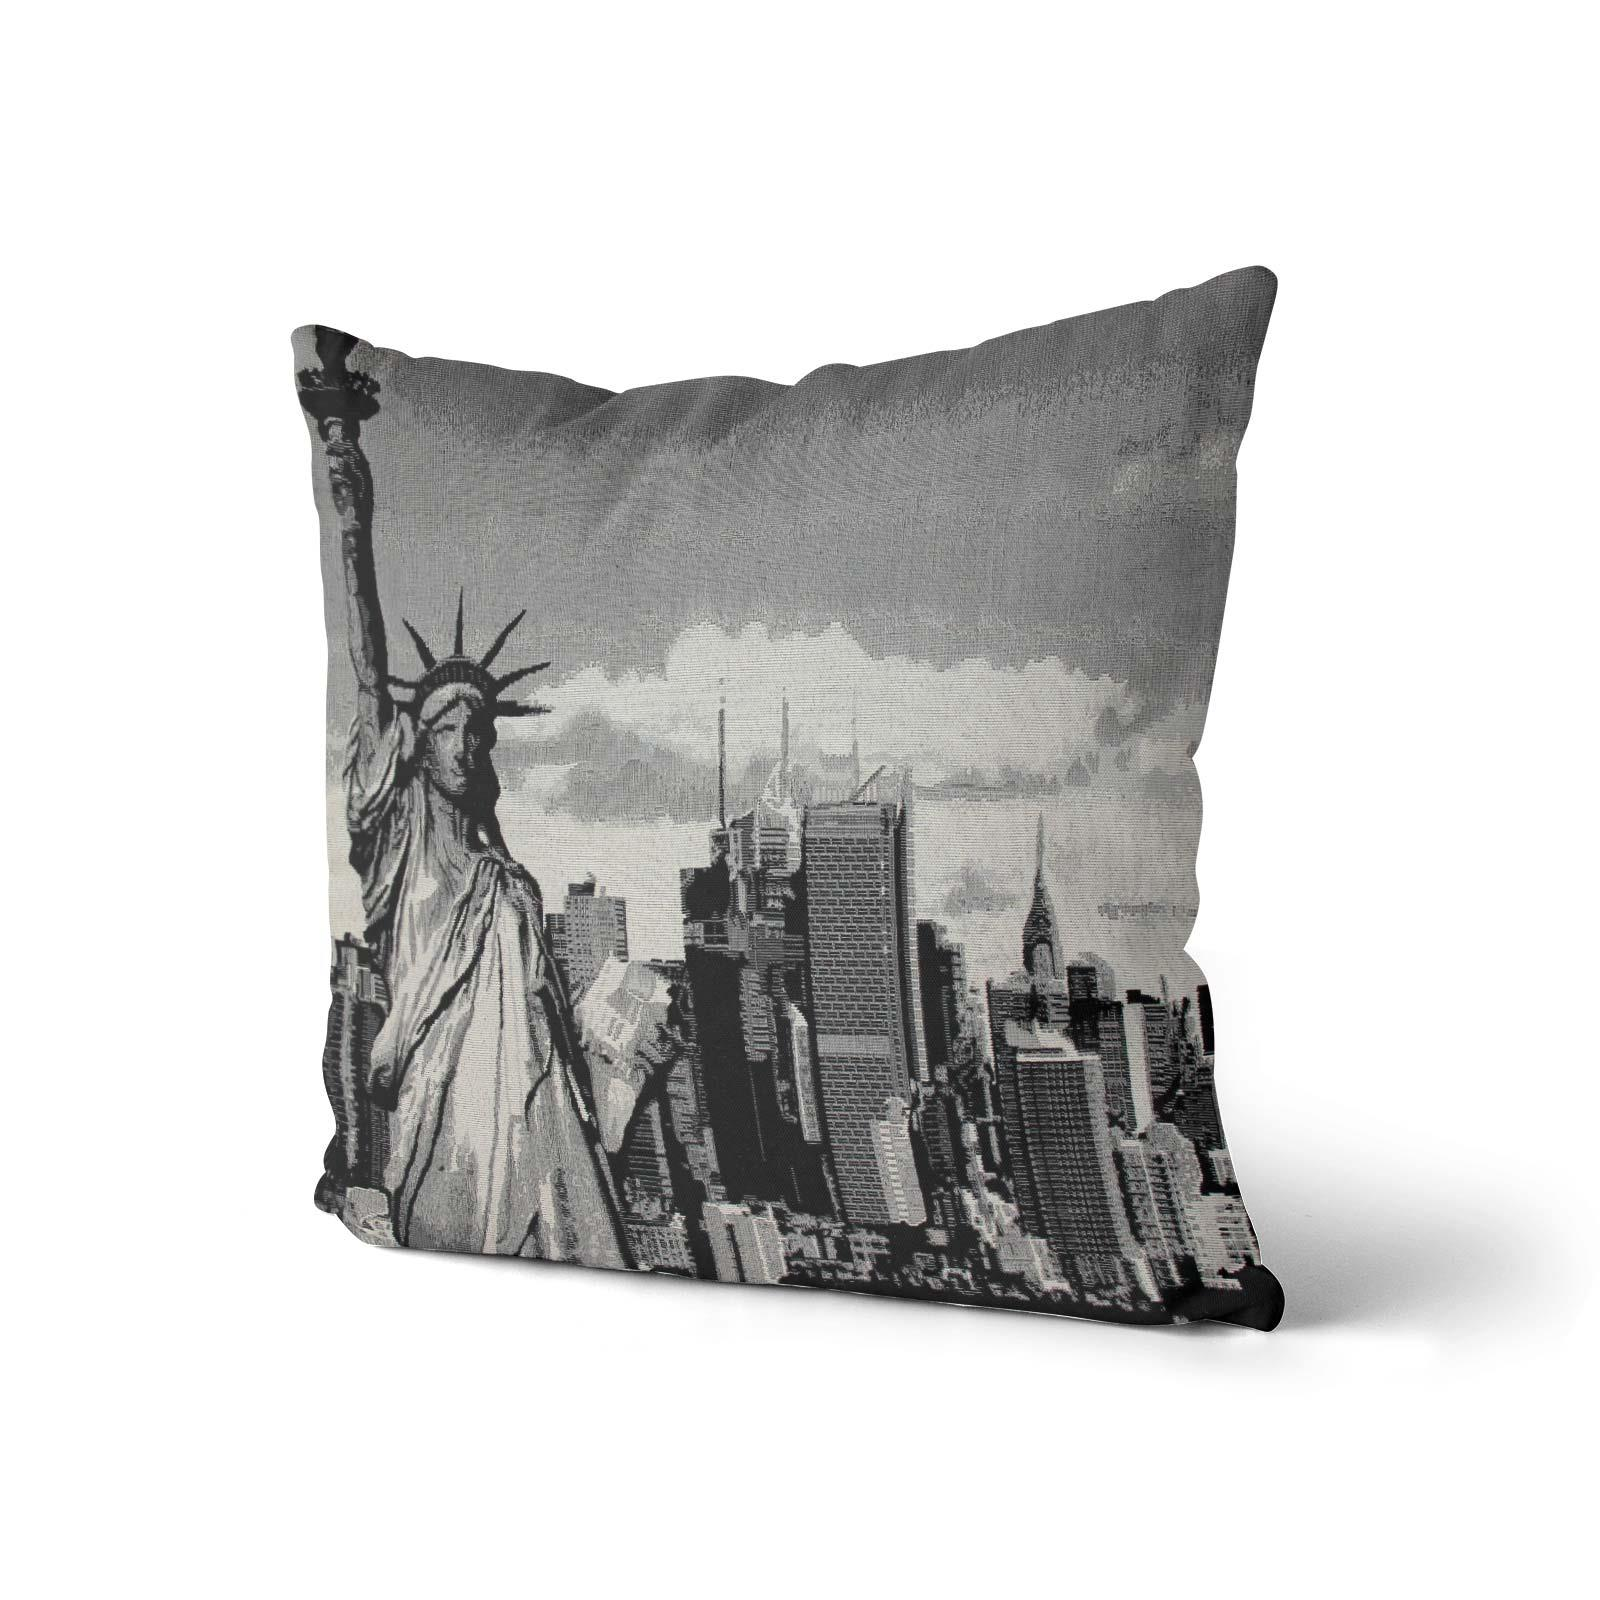 Tapestry-Cushion-Covers-Vintage-Pillow-Cover-Collection-18-034-45cm-Filled-Cushions thumbnail 114